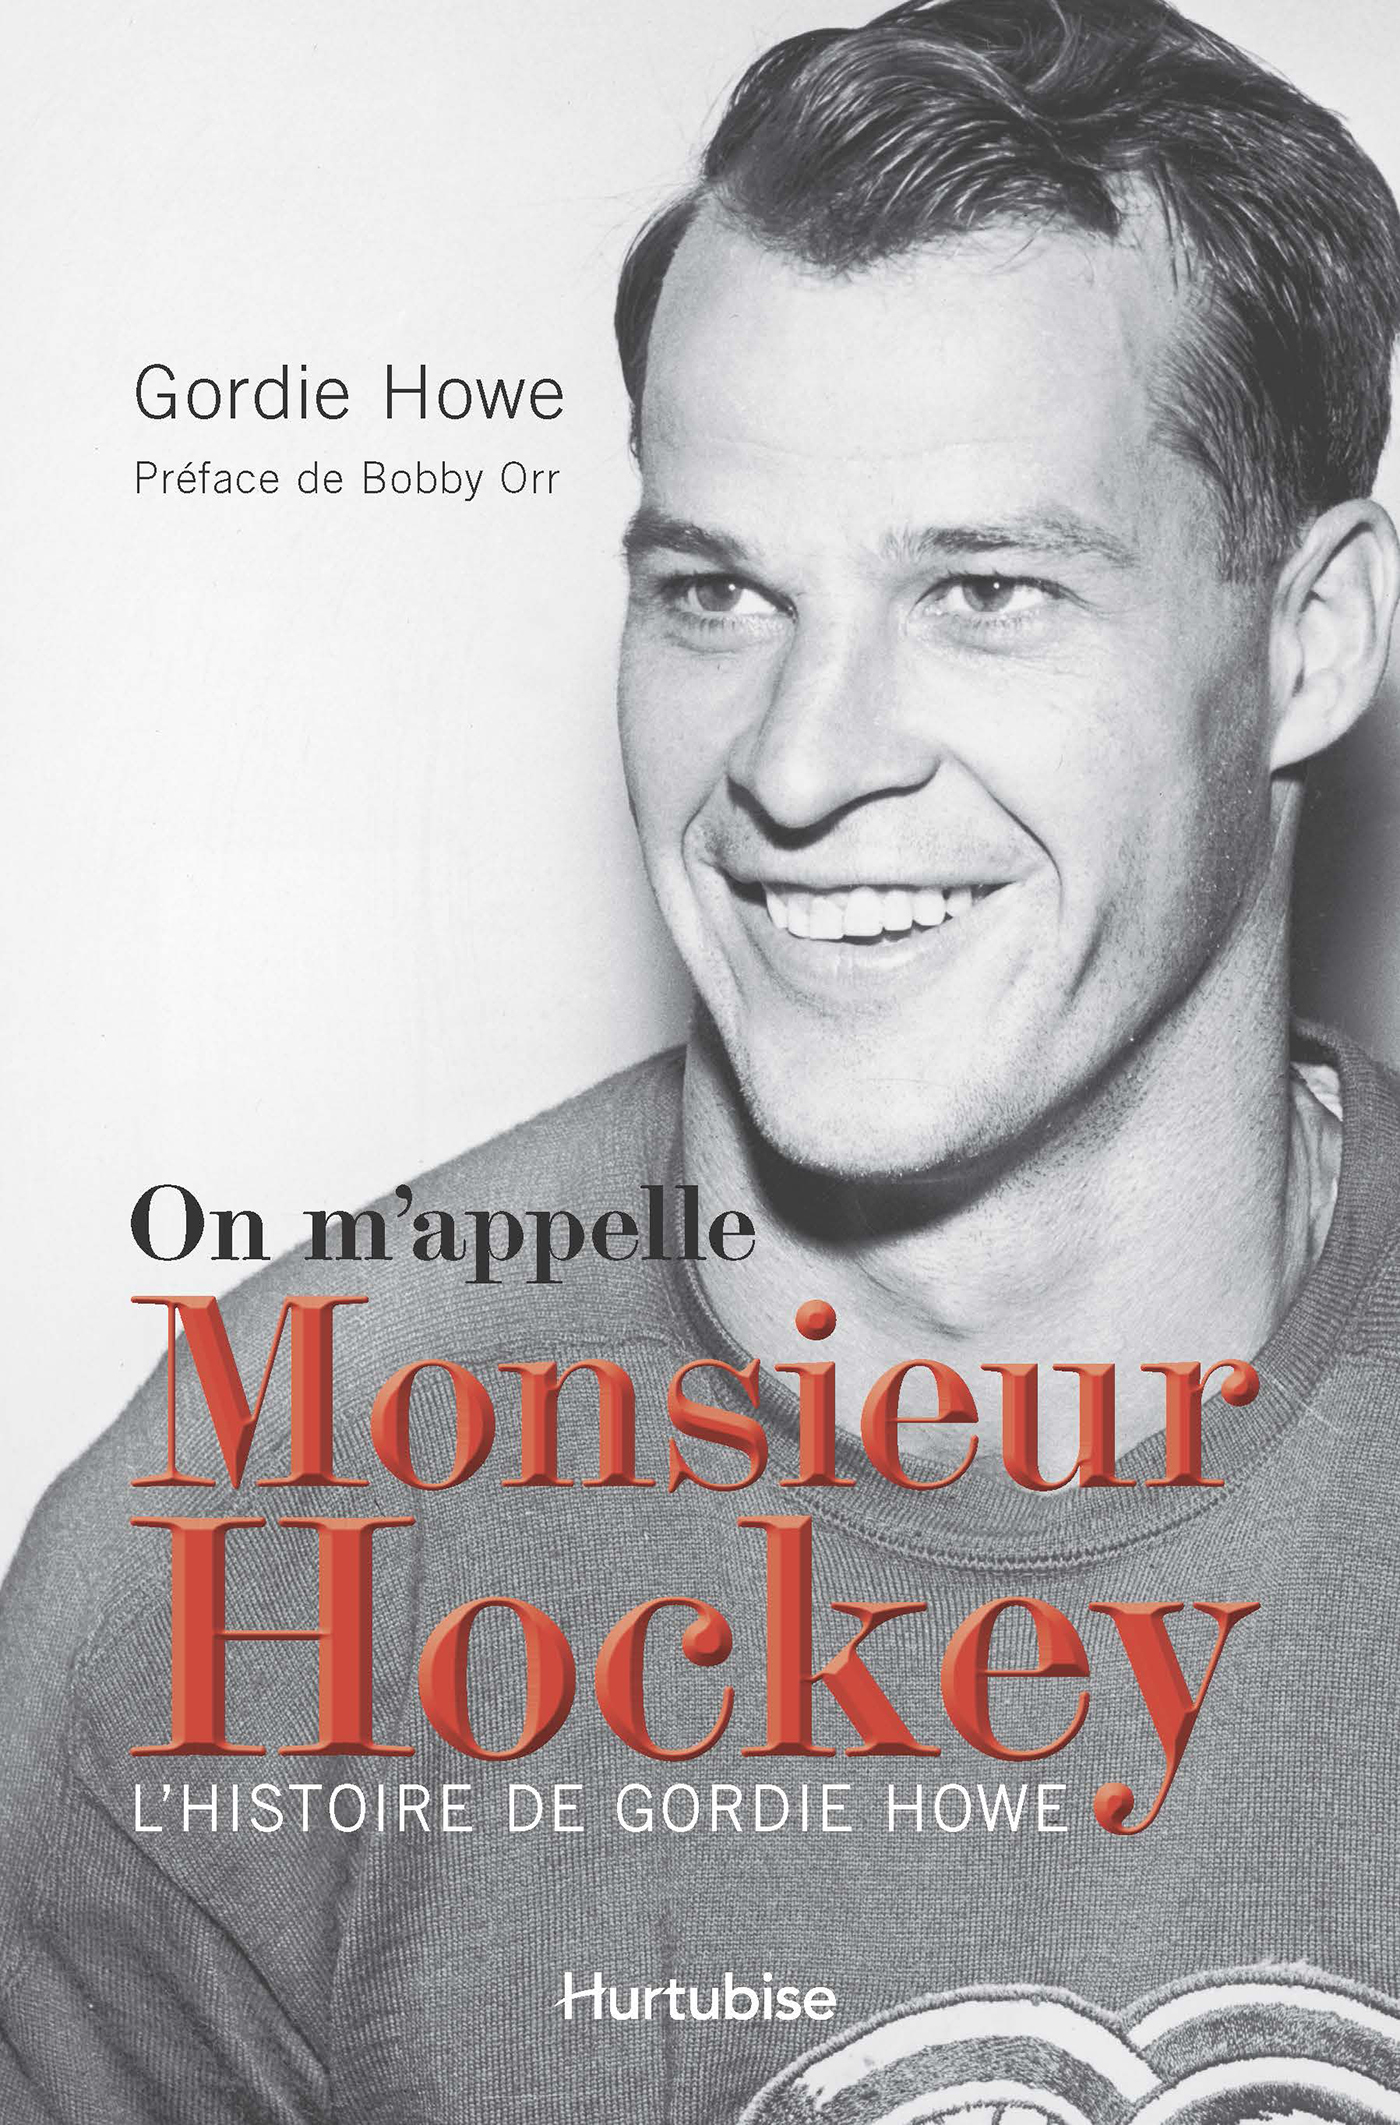 On m'appelle Monsieur Hockey, L'histoire de Gordie Howe